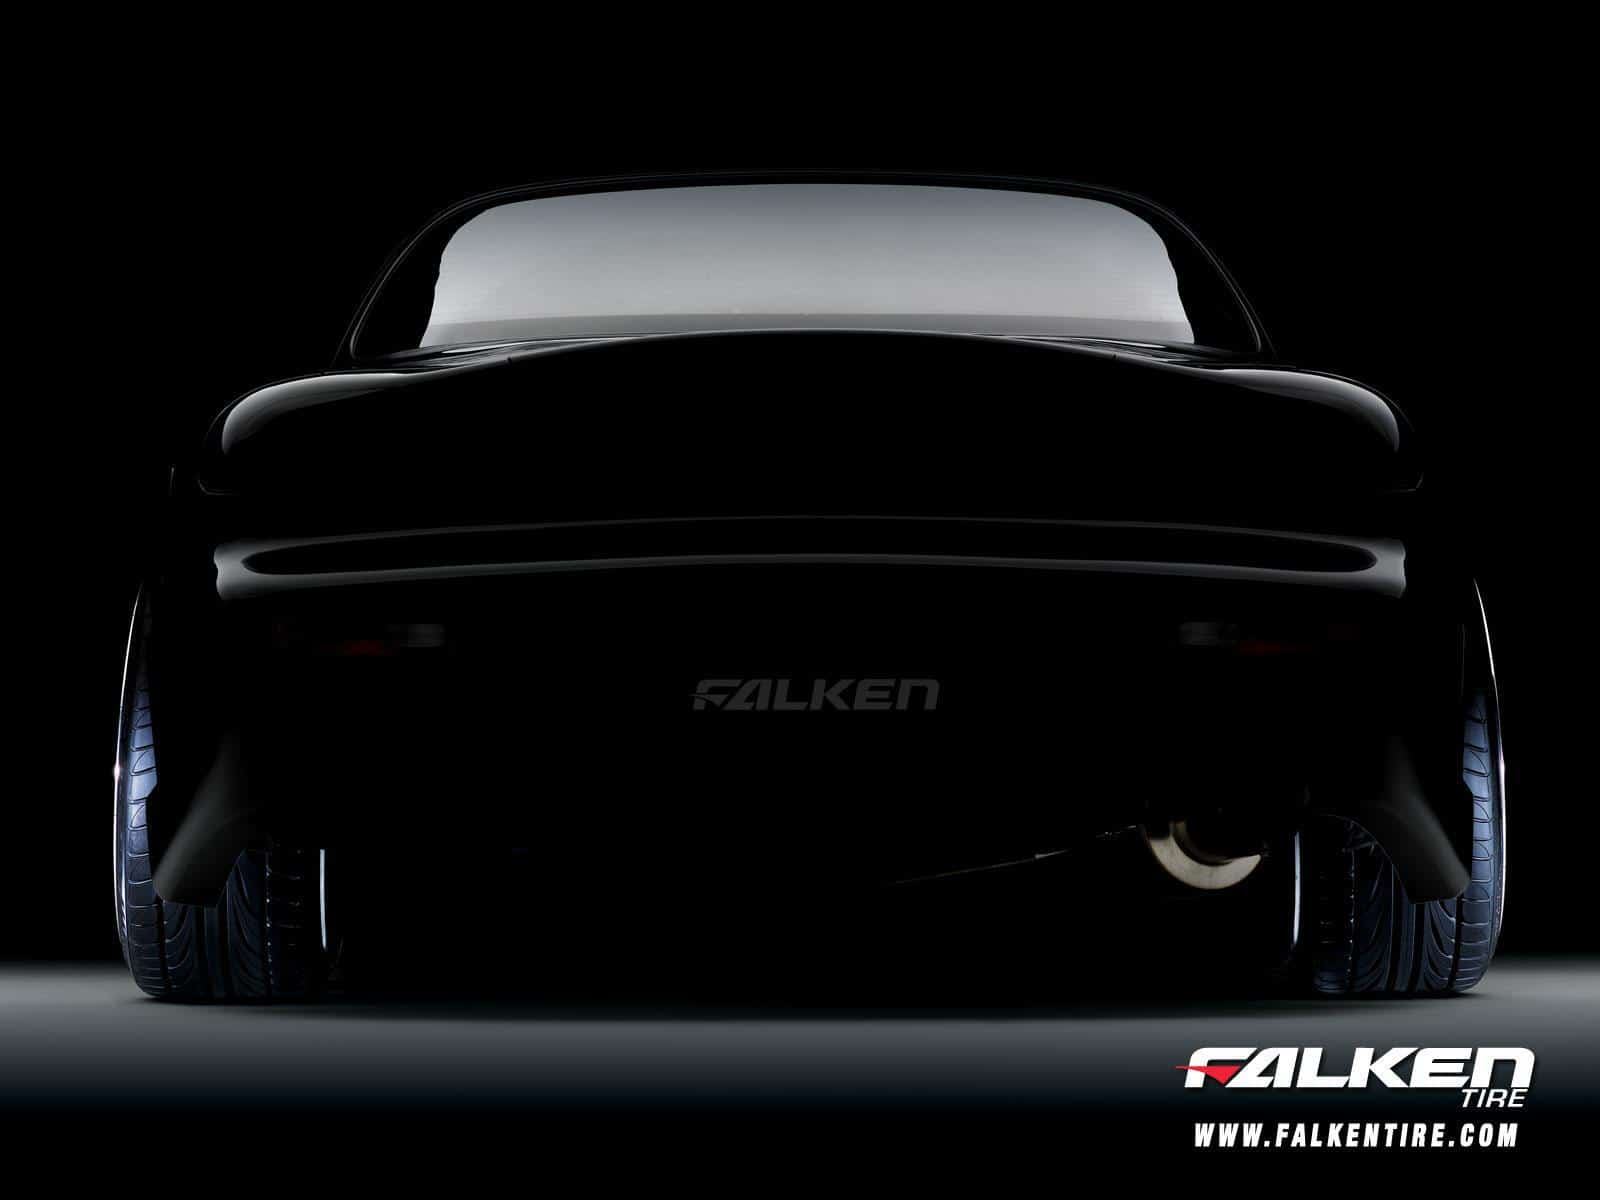 mazda rx7 wallpapers 1600x1200 1 Δες ένα τριρότορο Mazda RX-7 να ξεκινά και να σπέρνει τον πανικό drag race, Dragster, Mazda, Mazda RX-7, videos, Wankel